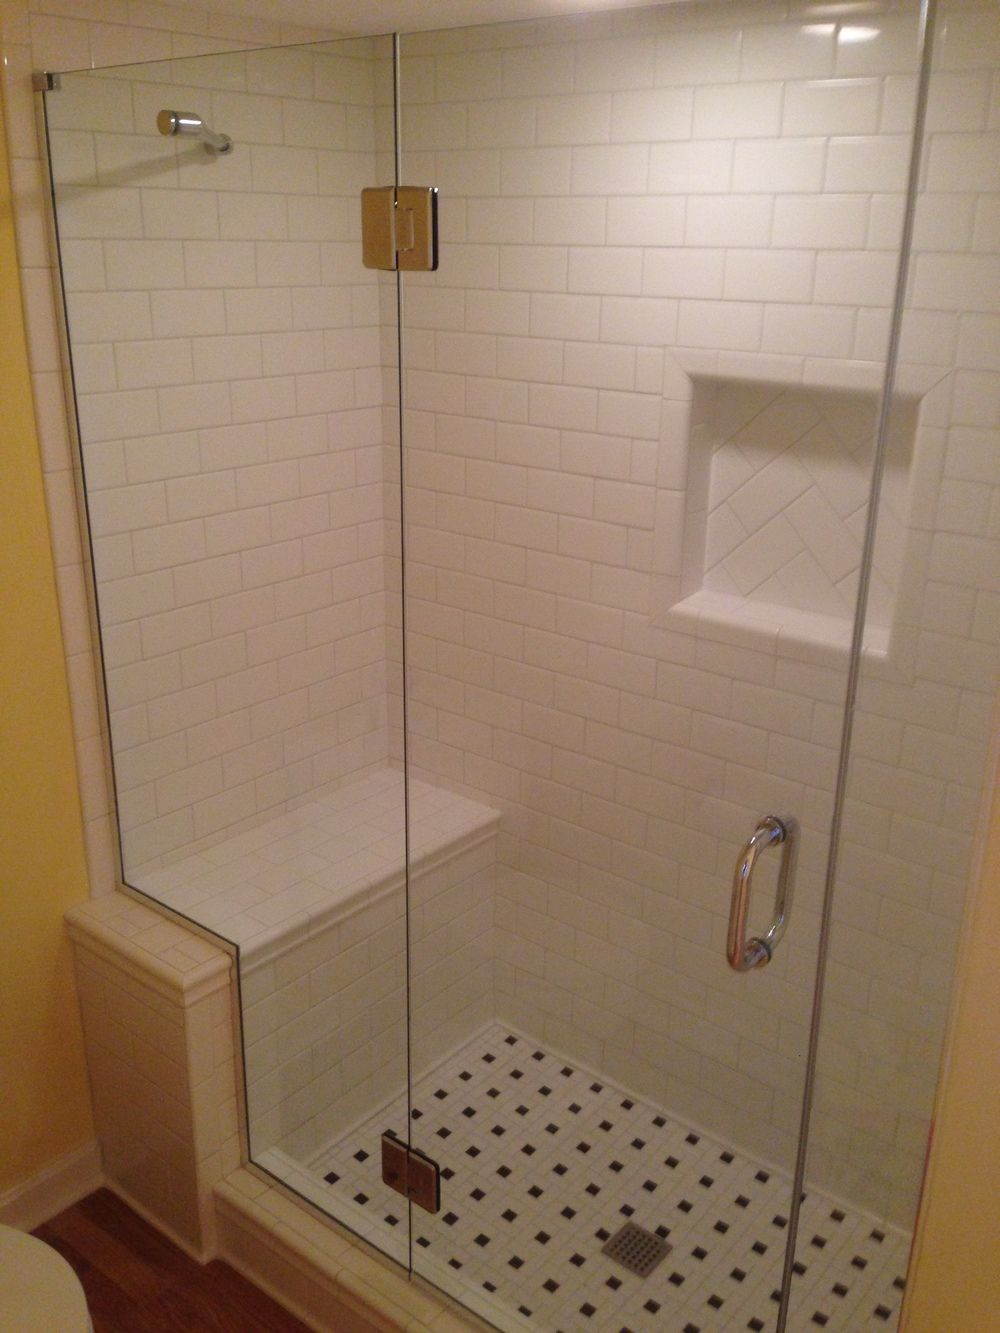 Converting Tub To Walk In Shower Bathroom Tile Walk In